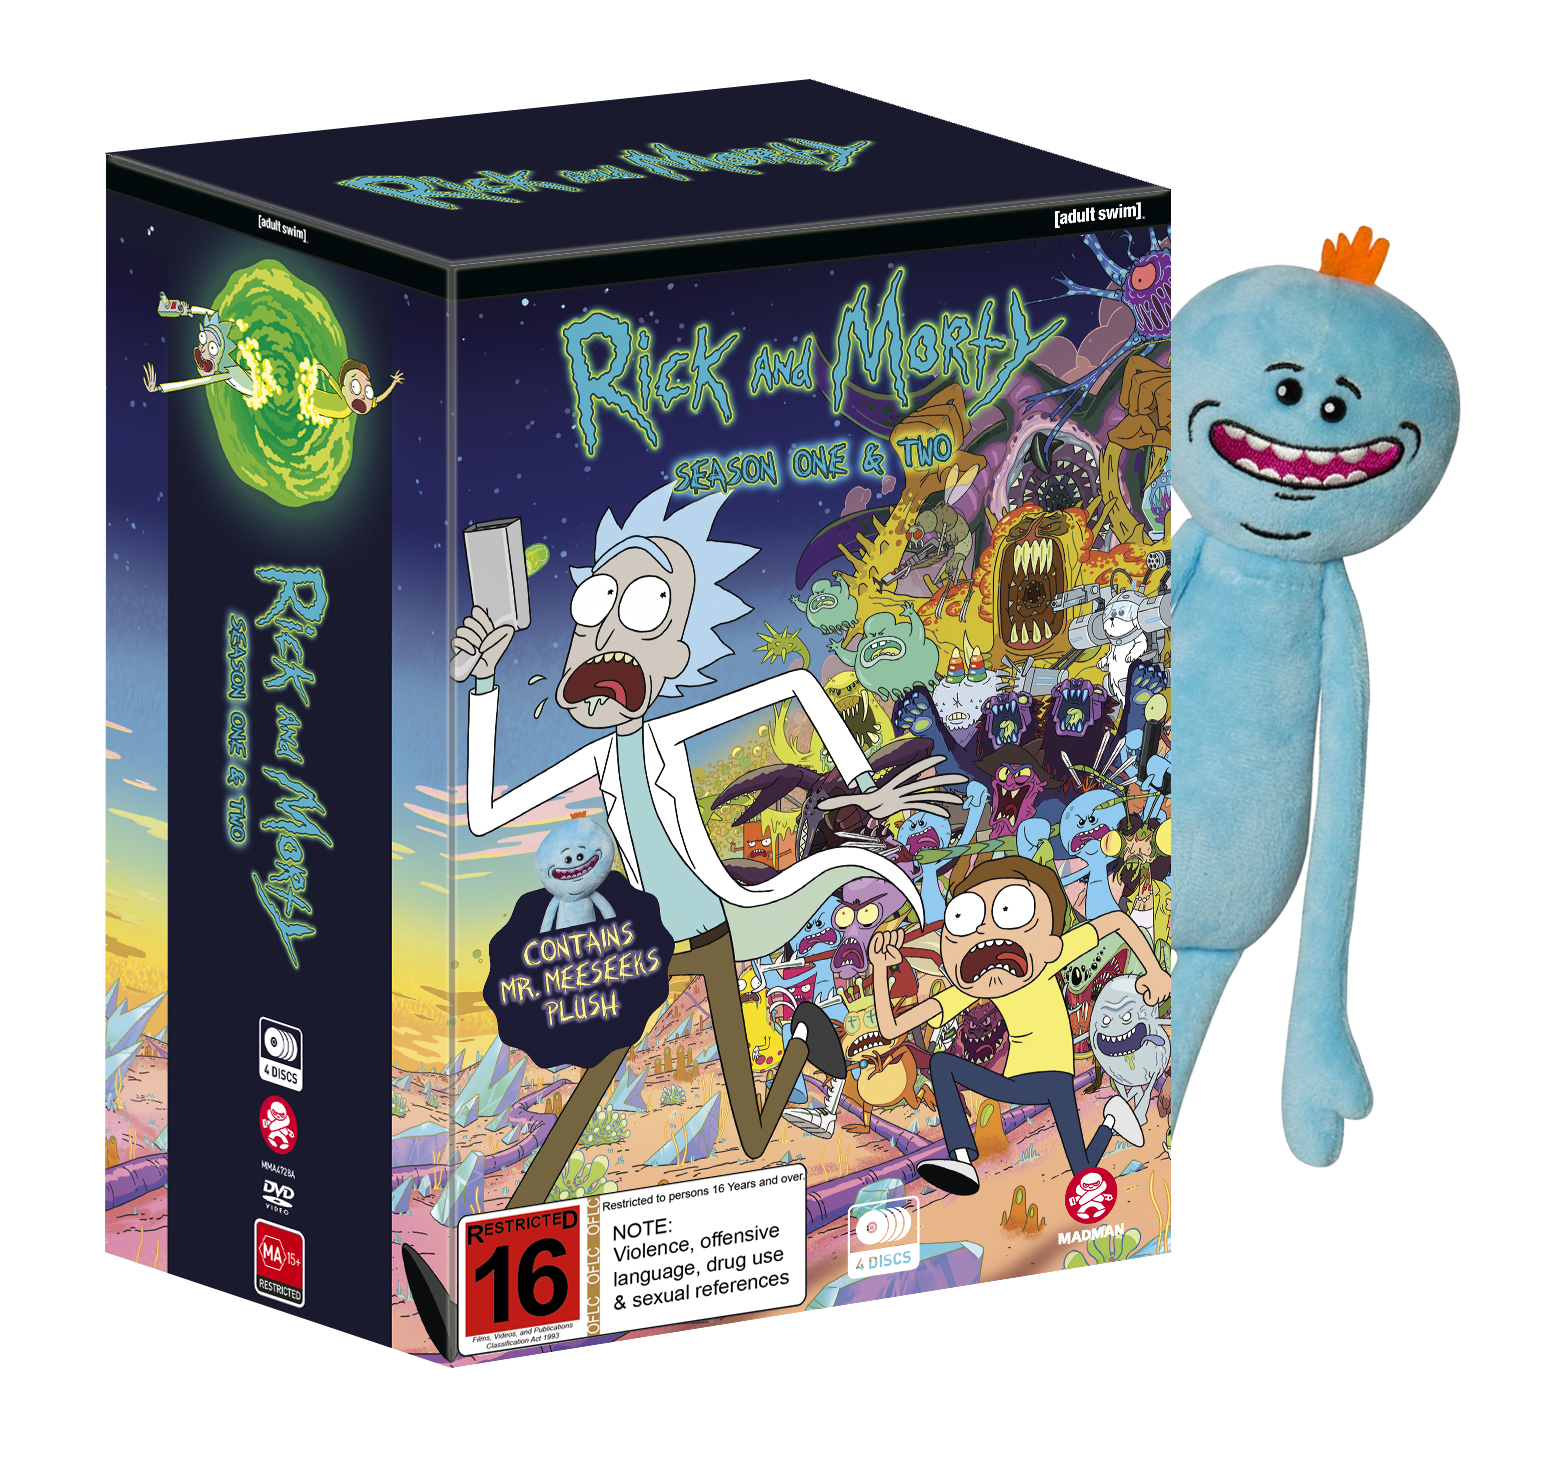 Rick And Morty Season 1 amp 2 DVD Buy Now At Mighty Ape NZ